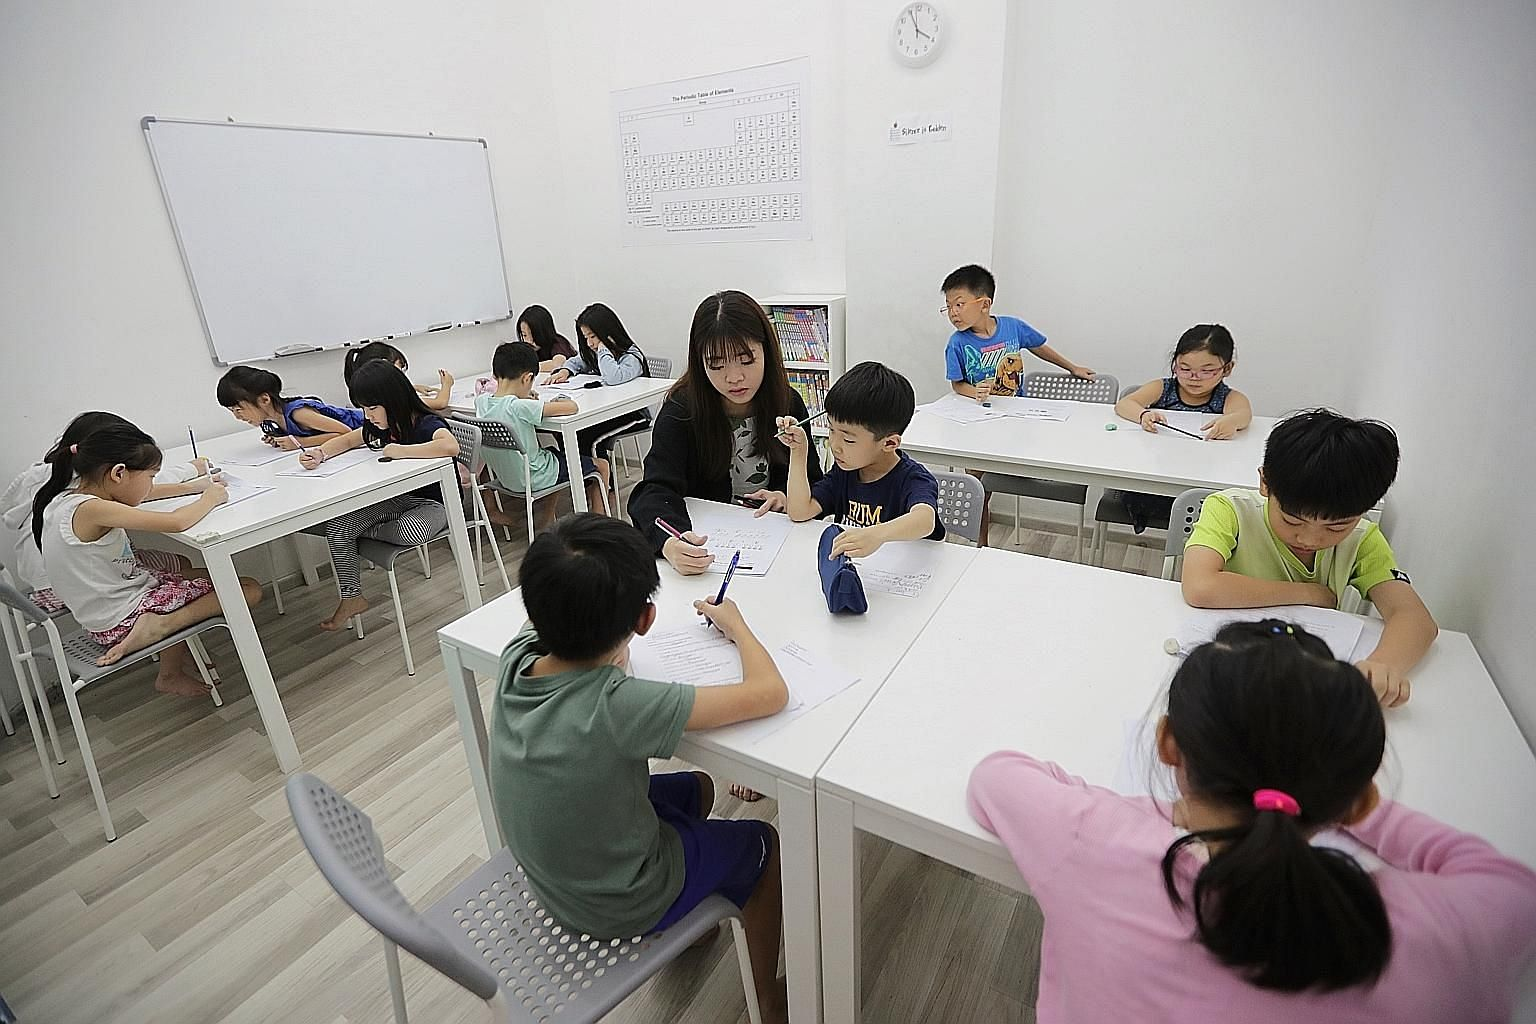 Tutor Calister Ng Jing Ni, 25, with pupils at EduFirst Learning Centre. Families spent about $1.4 billion last year on tuition for their children, according to the Household Expenditure Survey released in July. ST PHOTO: GIN TAY